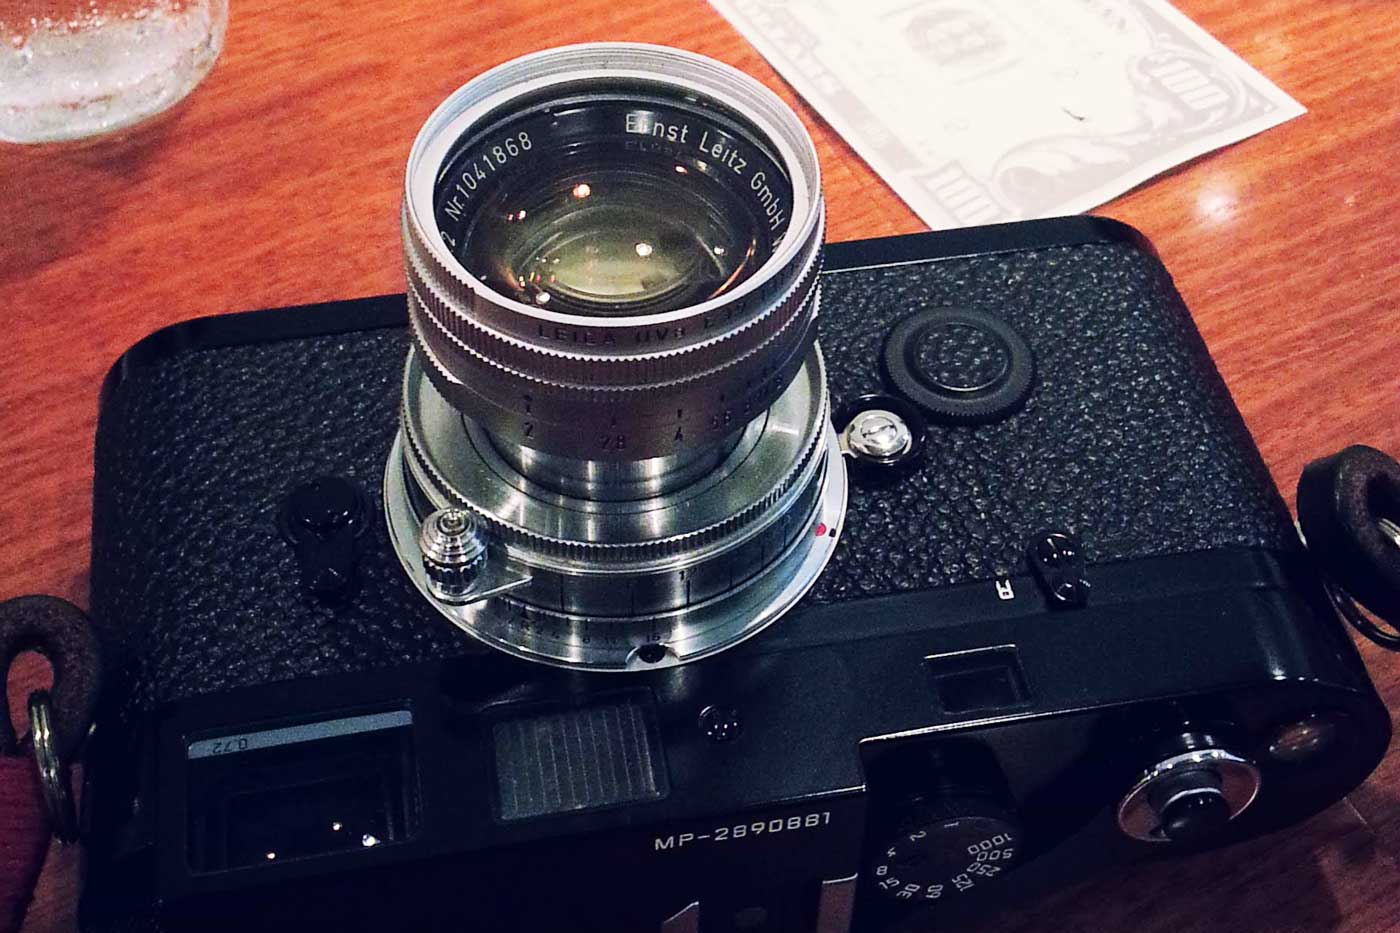 Leica-summicron-50mm-f2-50-f2.0-collapsible-v1-cron-lens-review-screw-bayonet-m-mount-radioactive-lathanum-camera-gears-film-hcb-black-and-white-l39-ltm